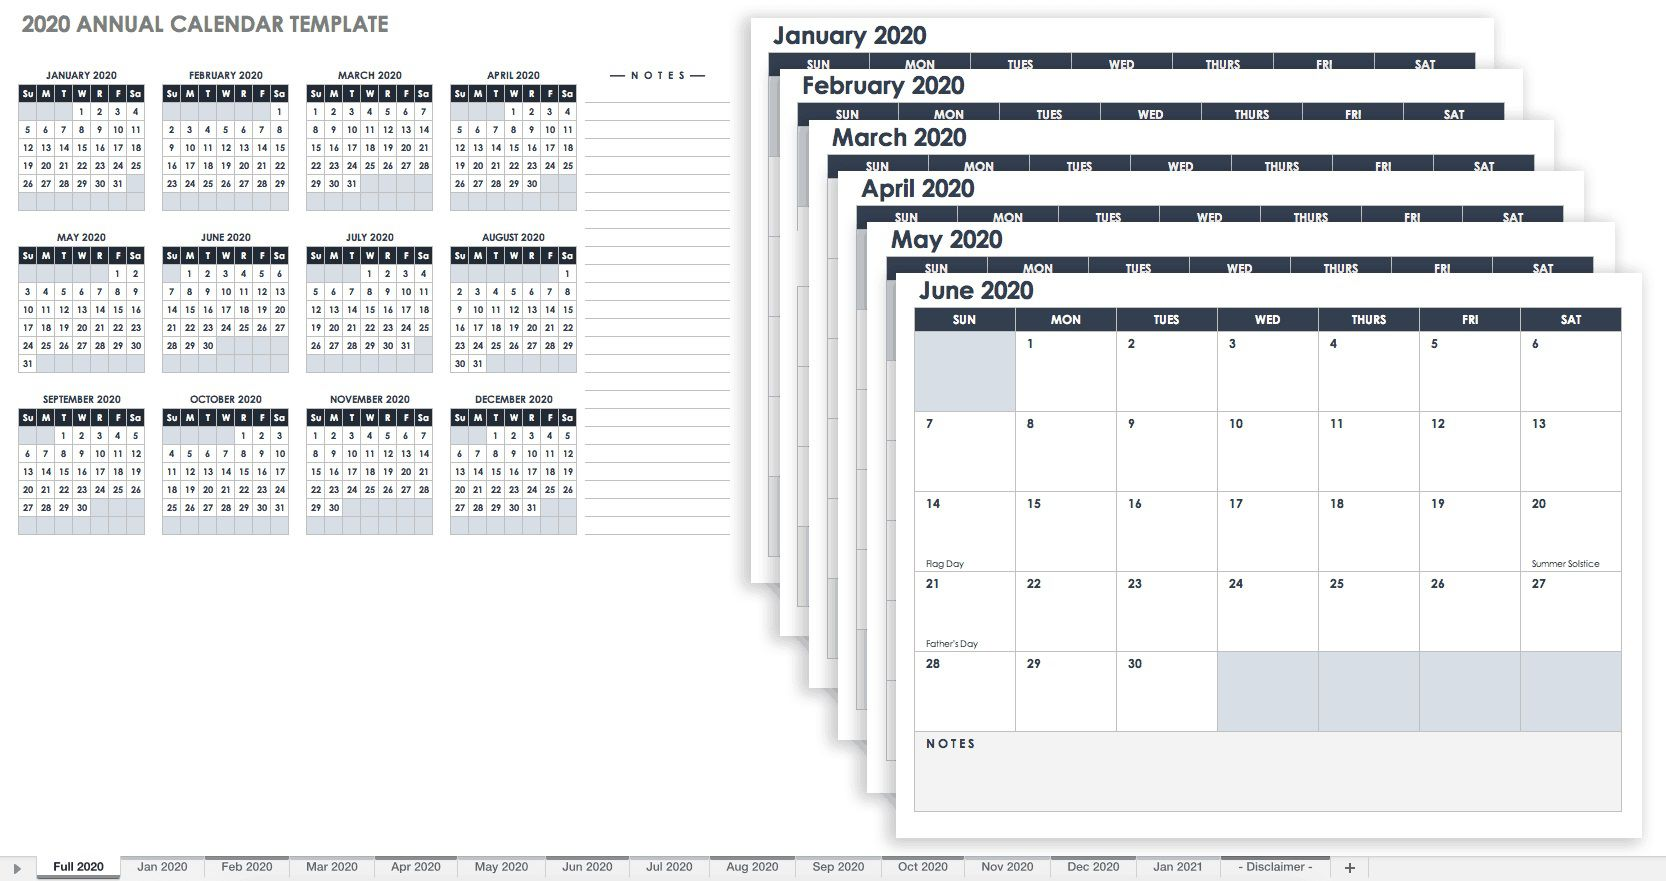 008 Outstanding Free Calendar Template Excel Photo  Monthly 2020 Perpetual 2019Full